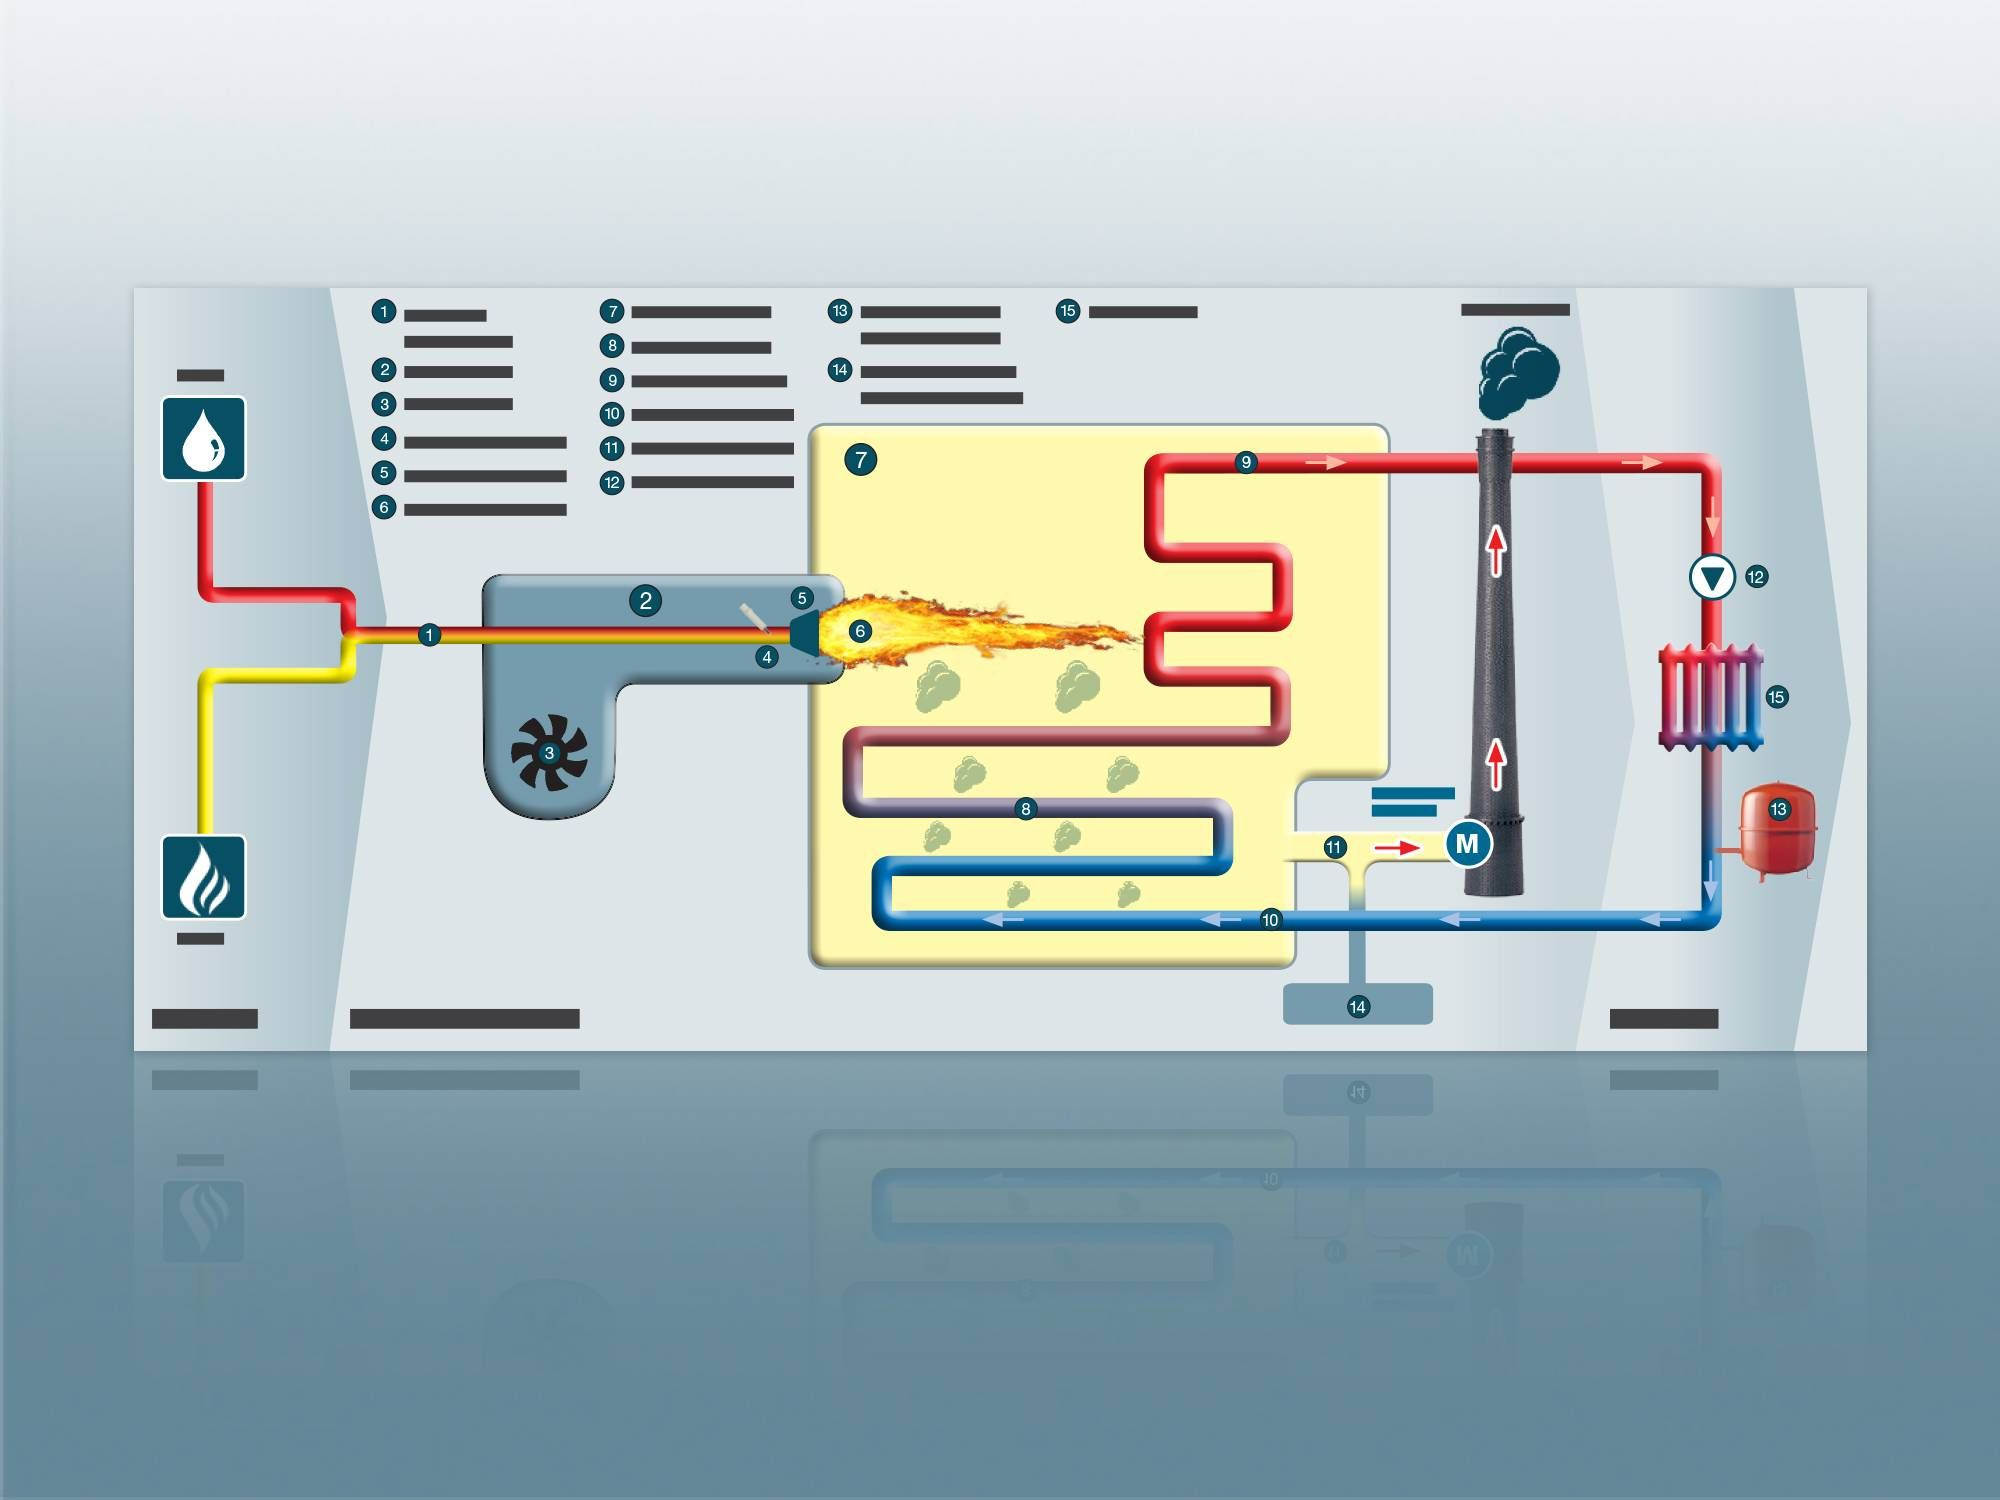 Combustion process in the boiler system